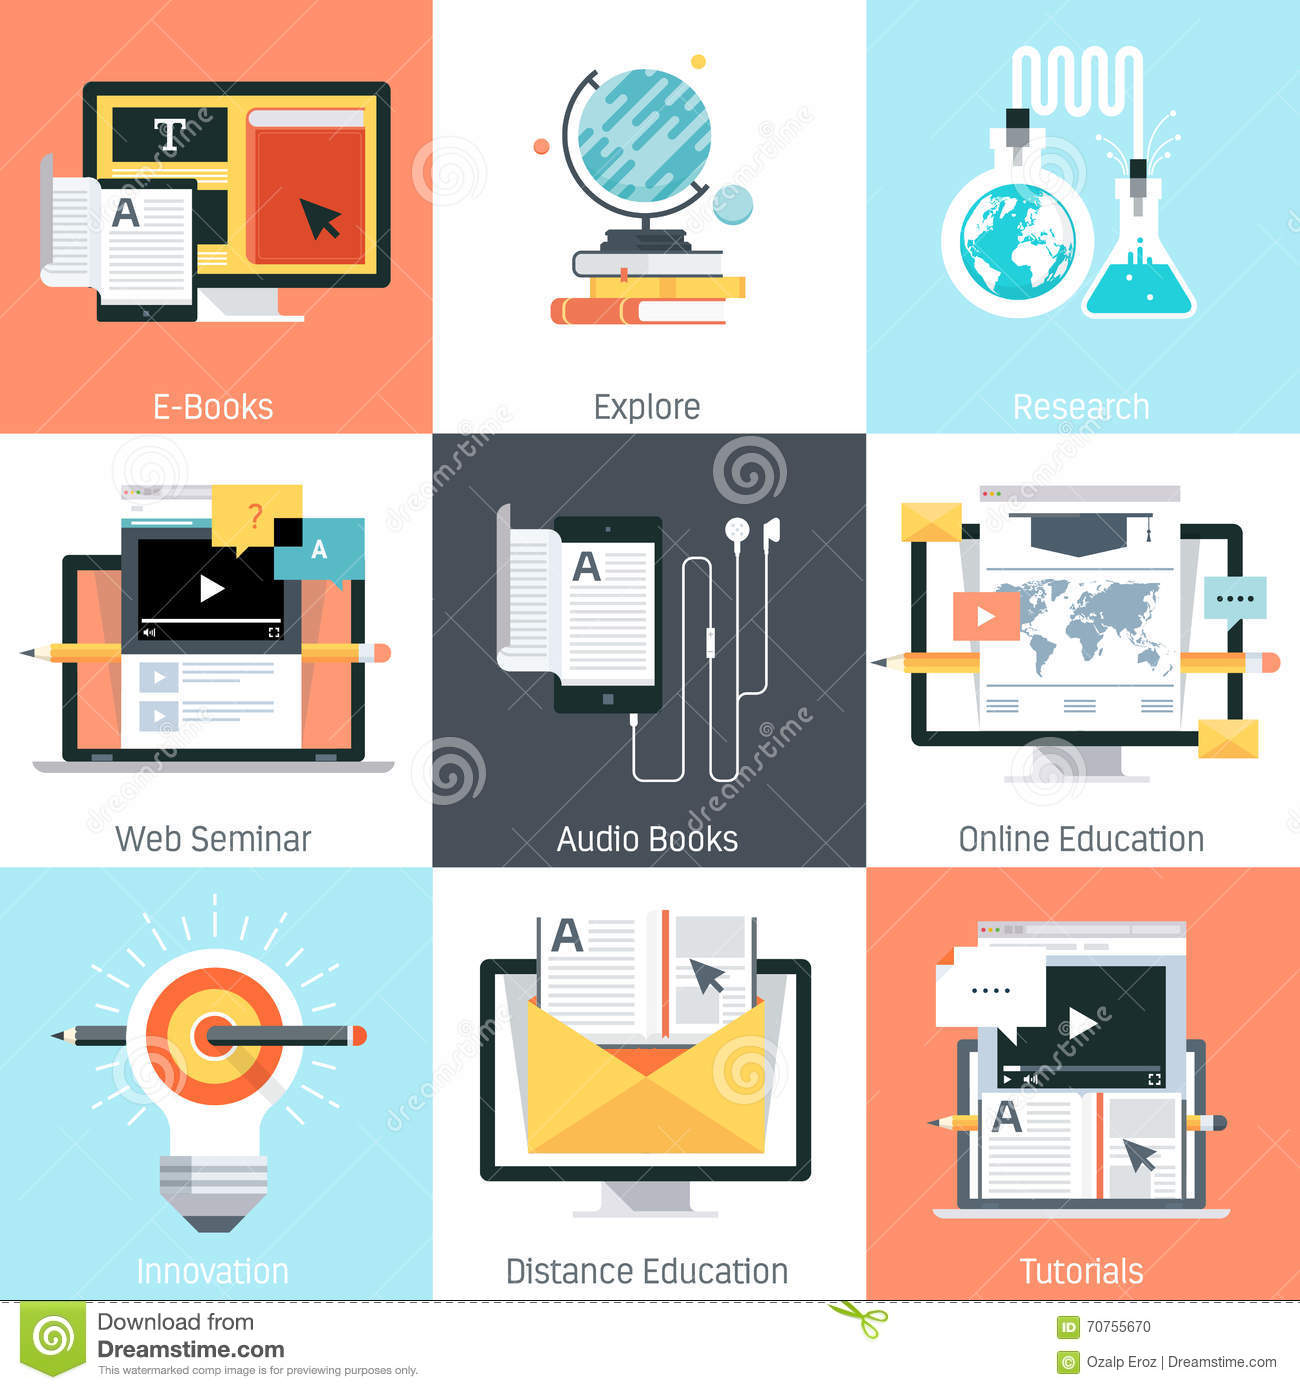 Education theme, flat style, colorful, icon set